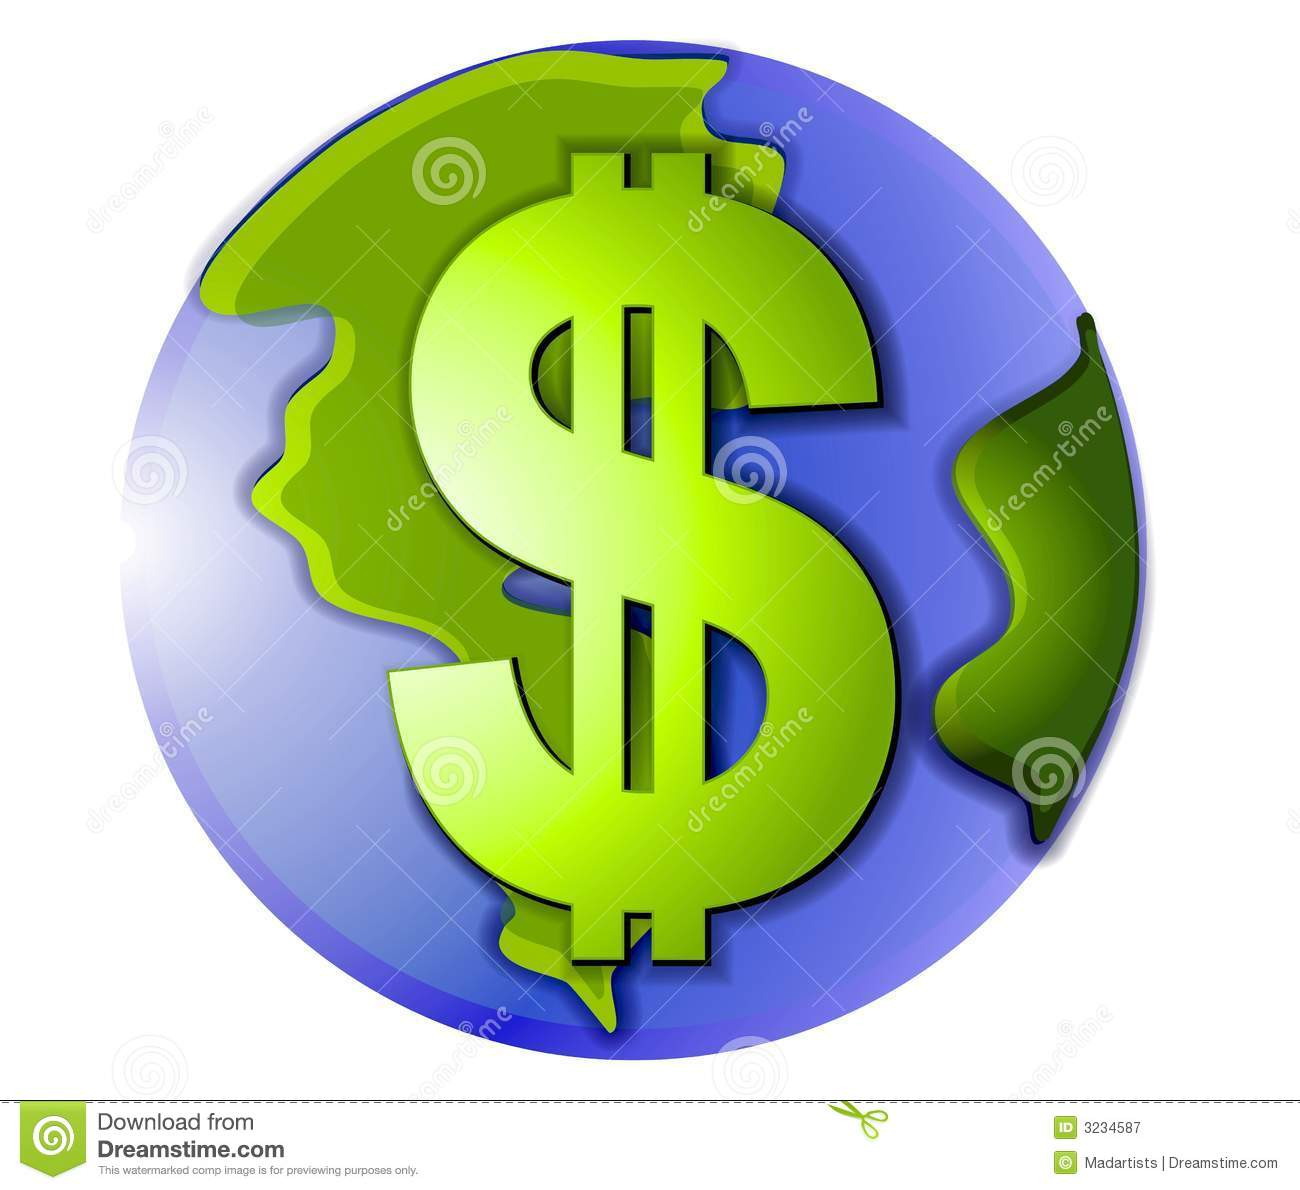 10 icon dollar sign clip art images dollar sign icon